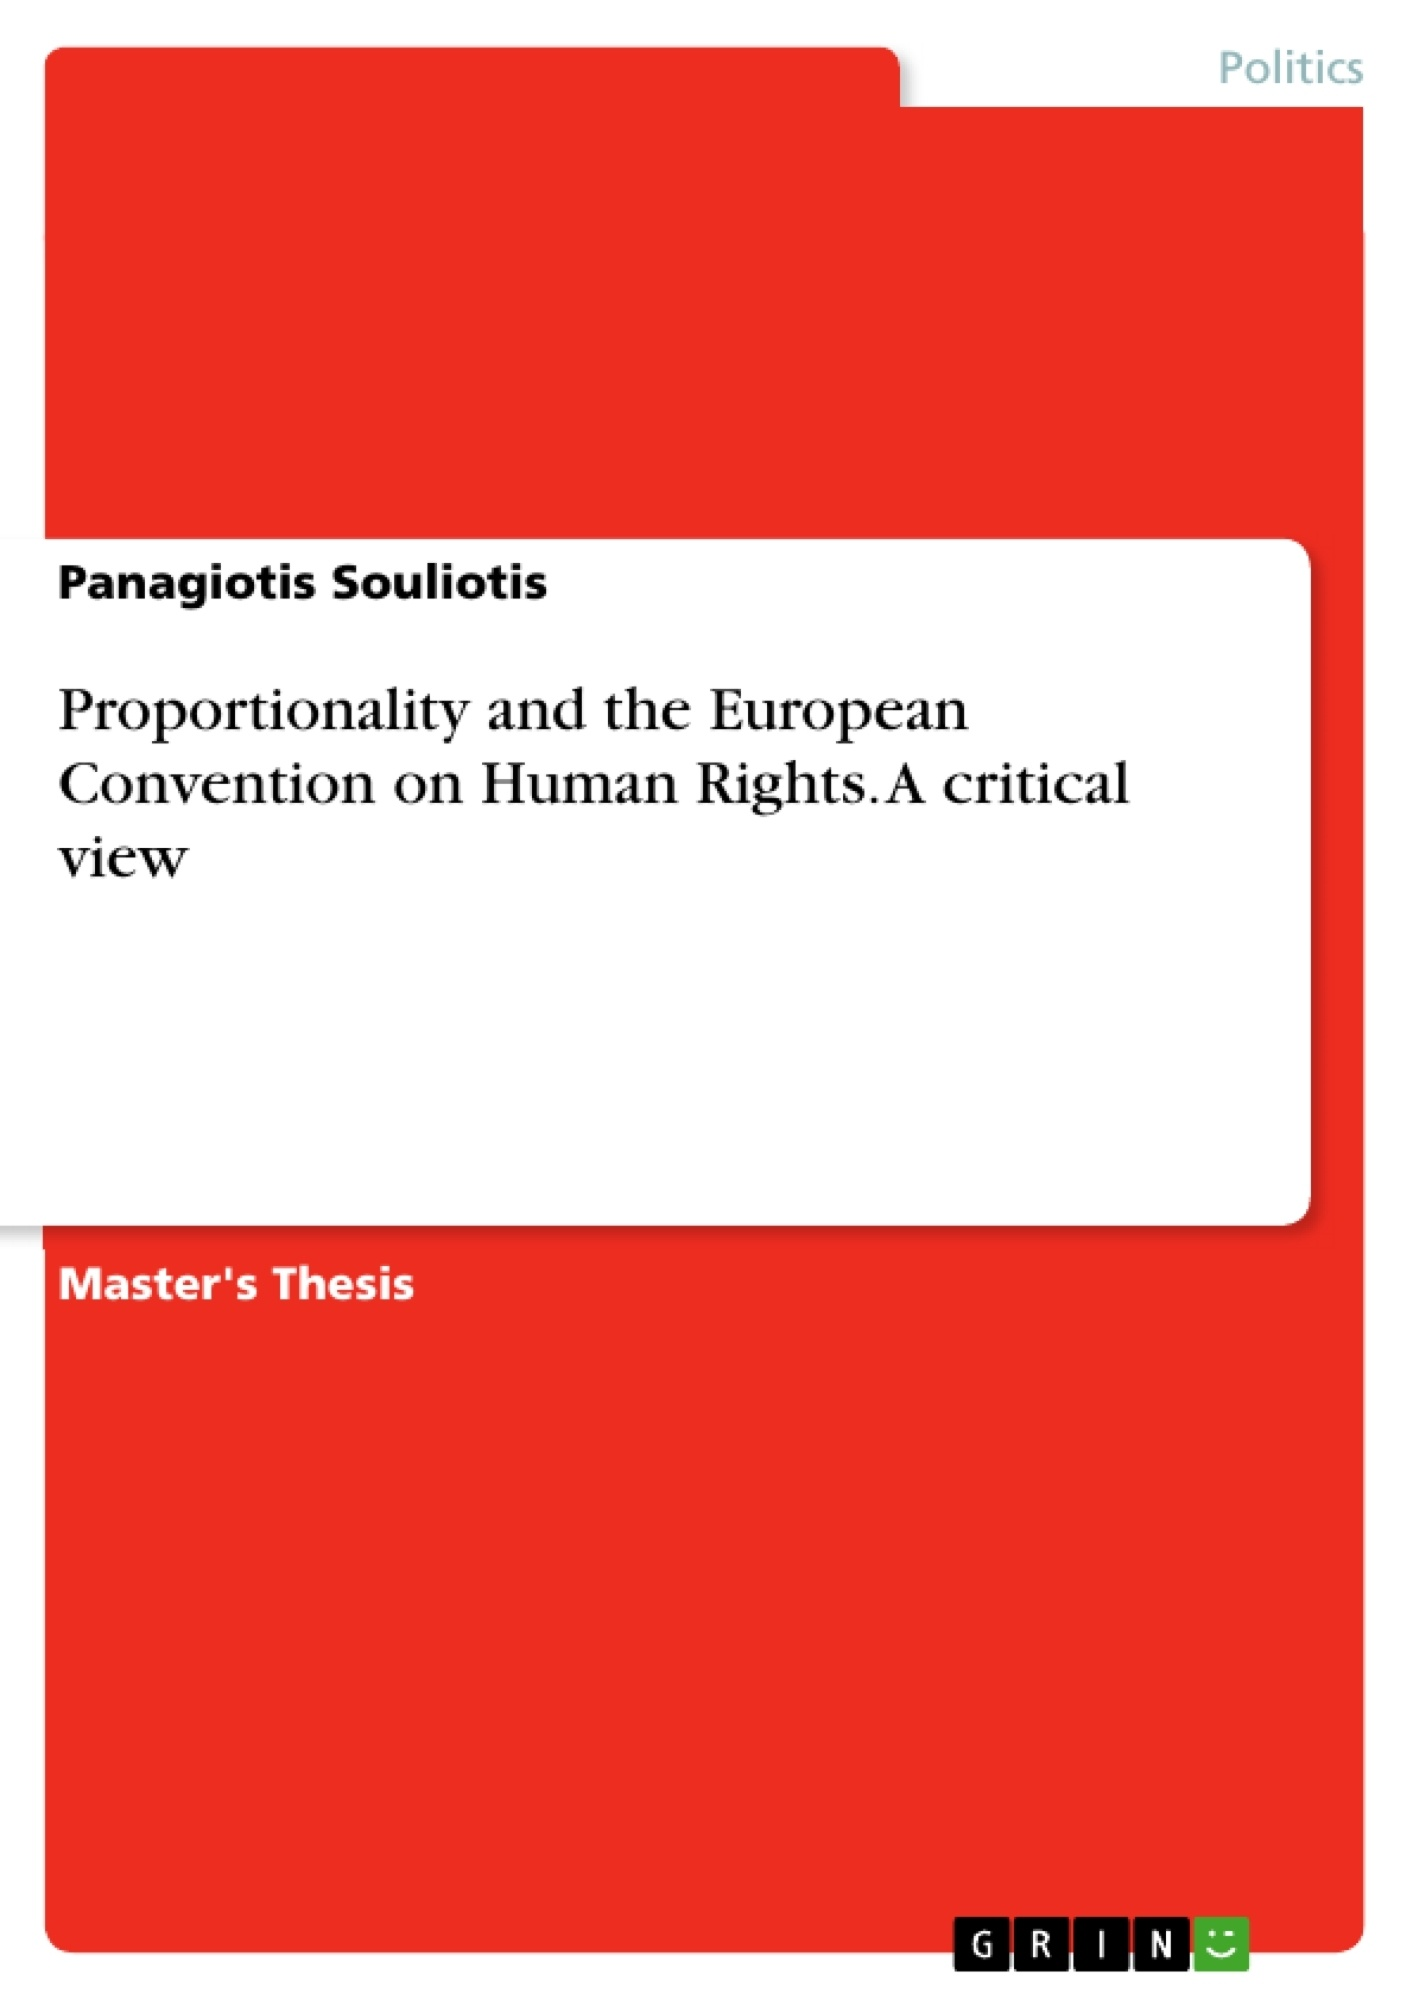 european convention on human rights essay The european convention on human rights law constitutional administrative essay introduction the human rights act (hra) enacted in 1998 which incorporates the european convention on human rights (echr) into uk domestic law and so the domestic courts could give effect to convention rights.